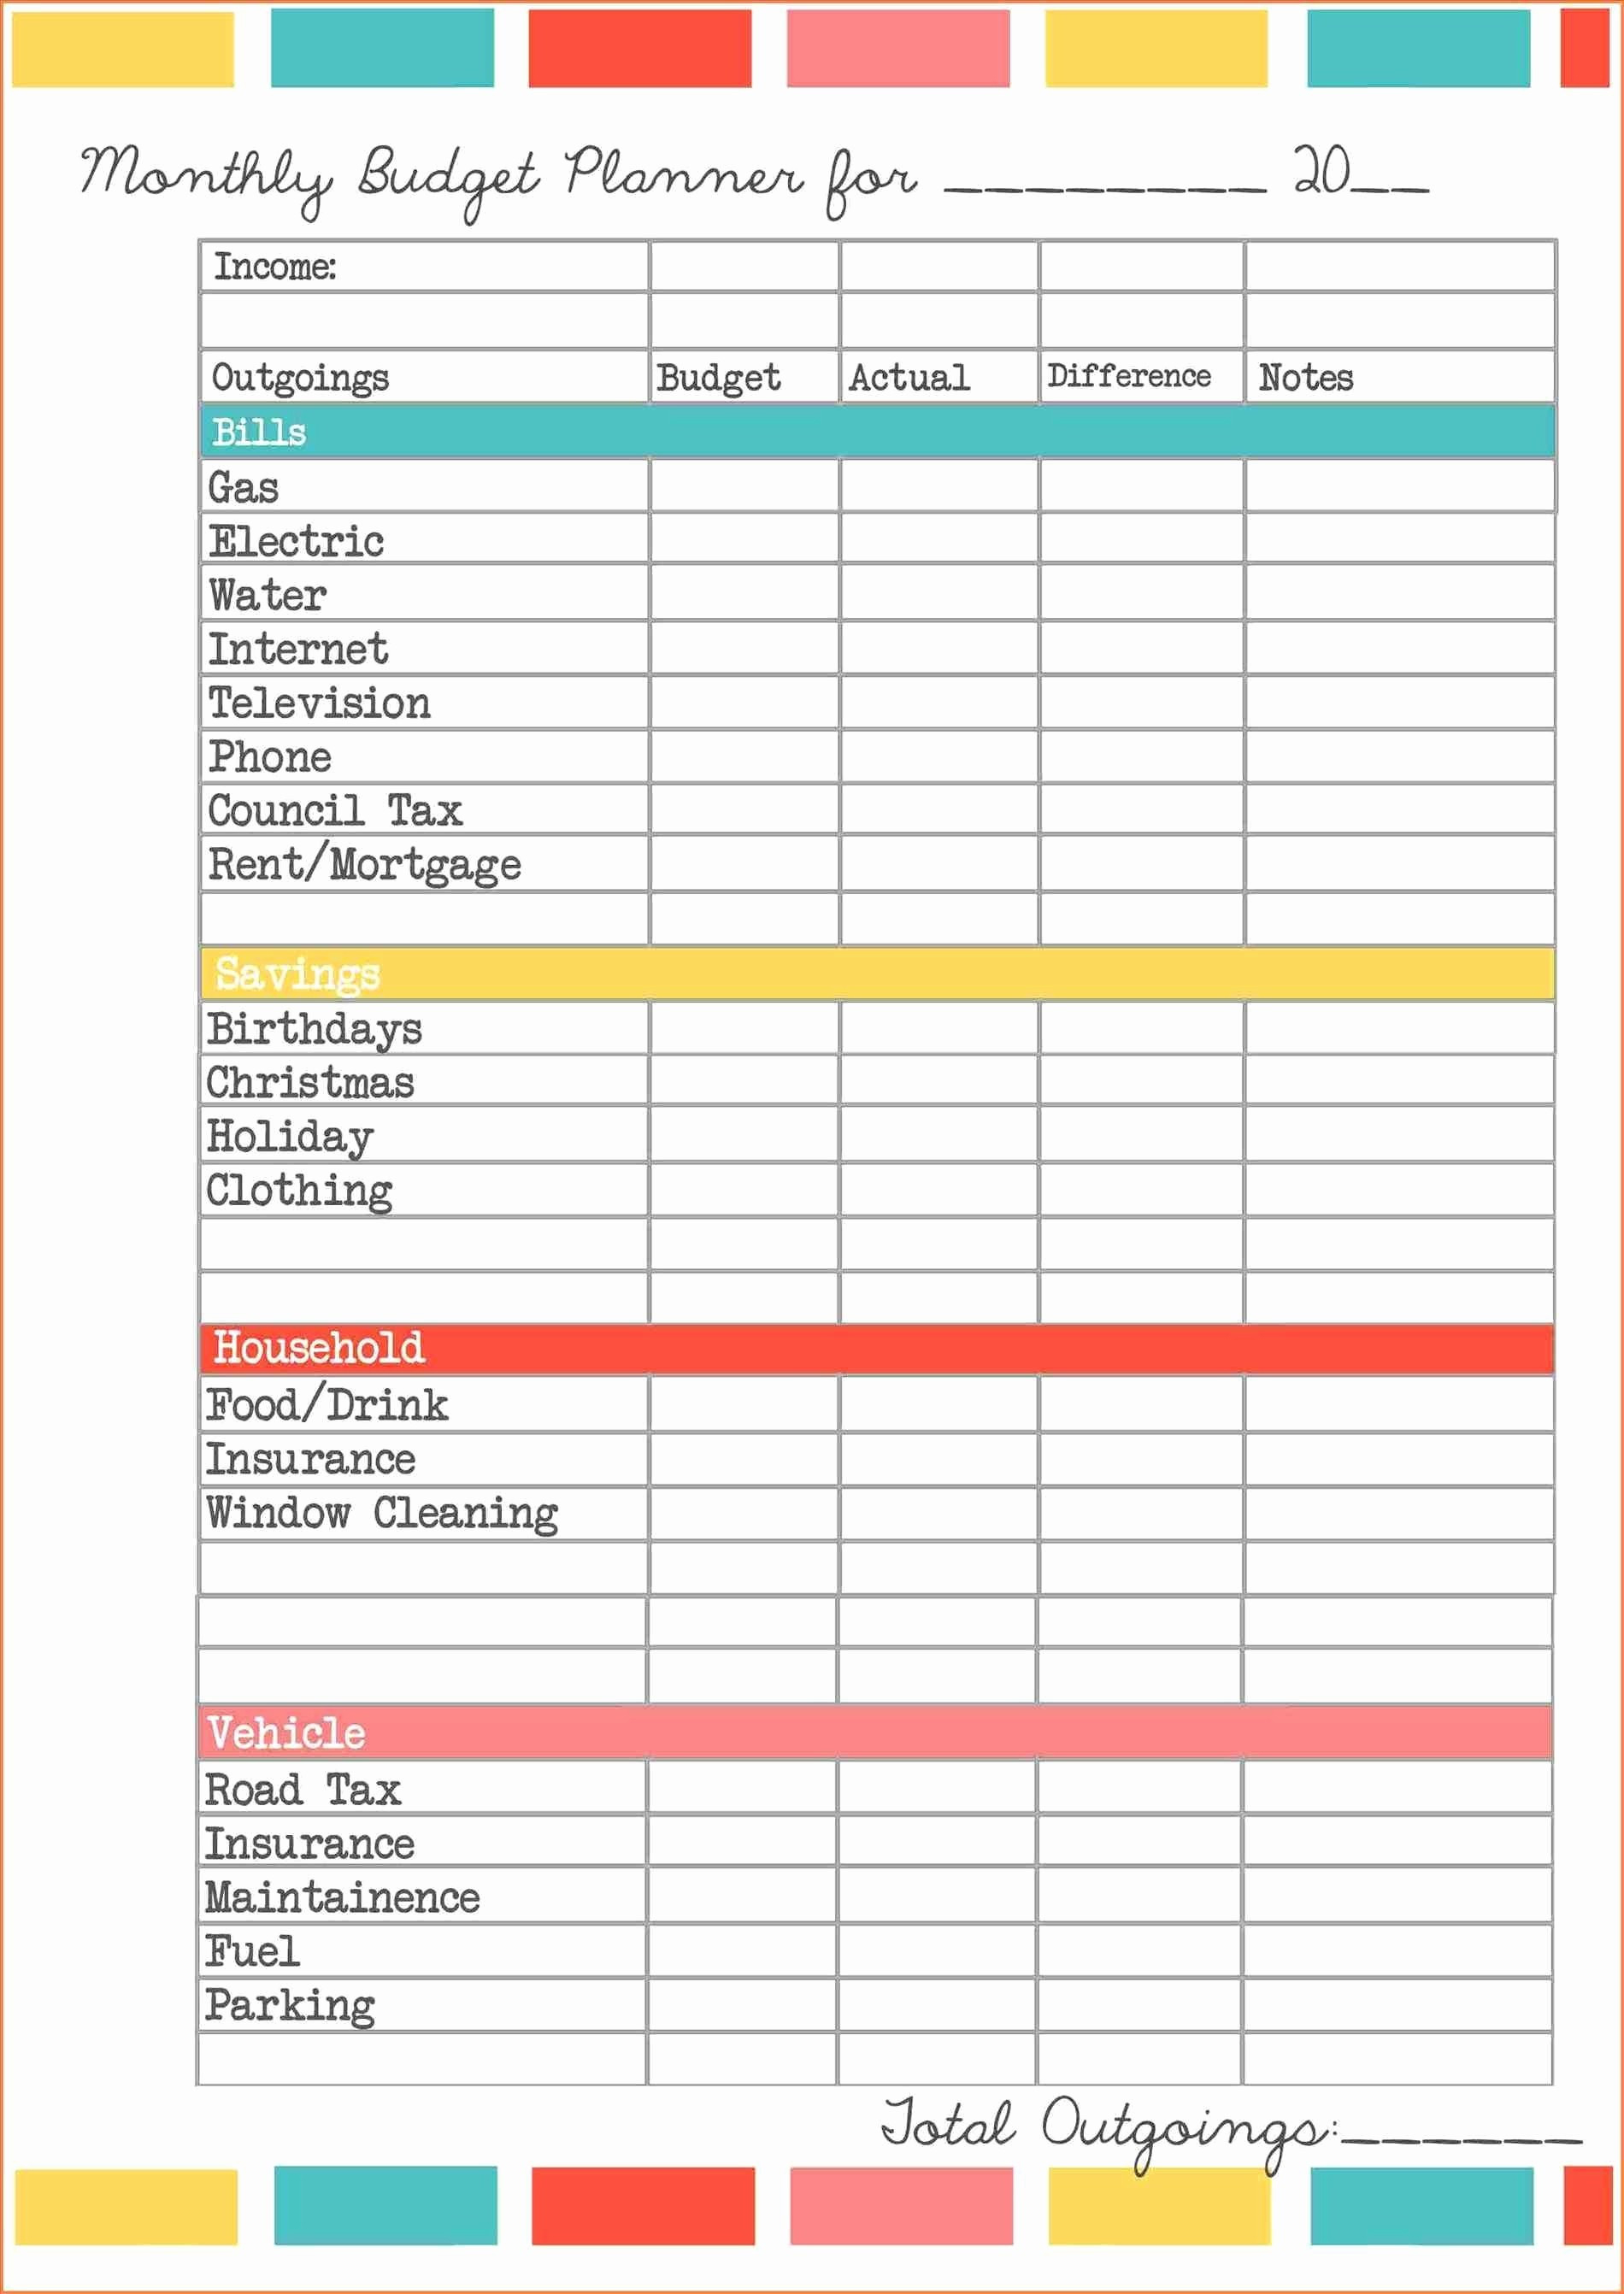 Accountingeadsheet Templates For Small Business Free Downloads Excel For Small Business Tax Spreadsheet Template